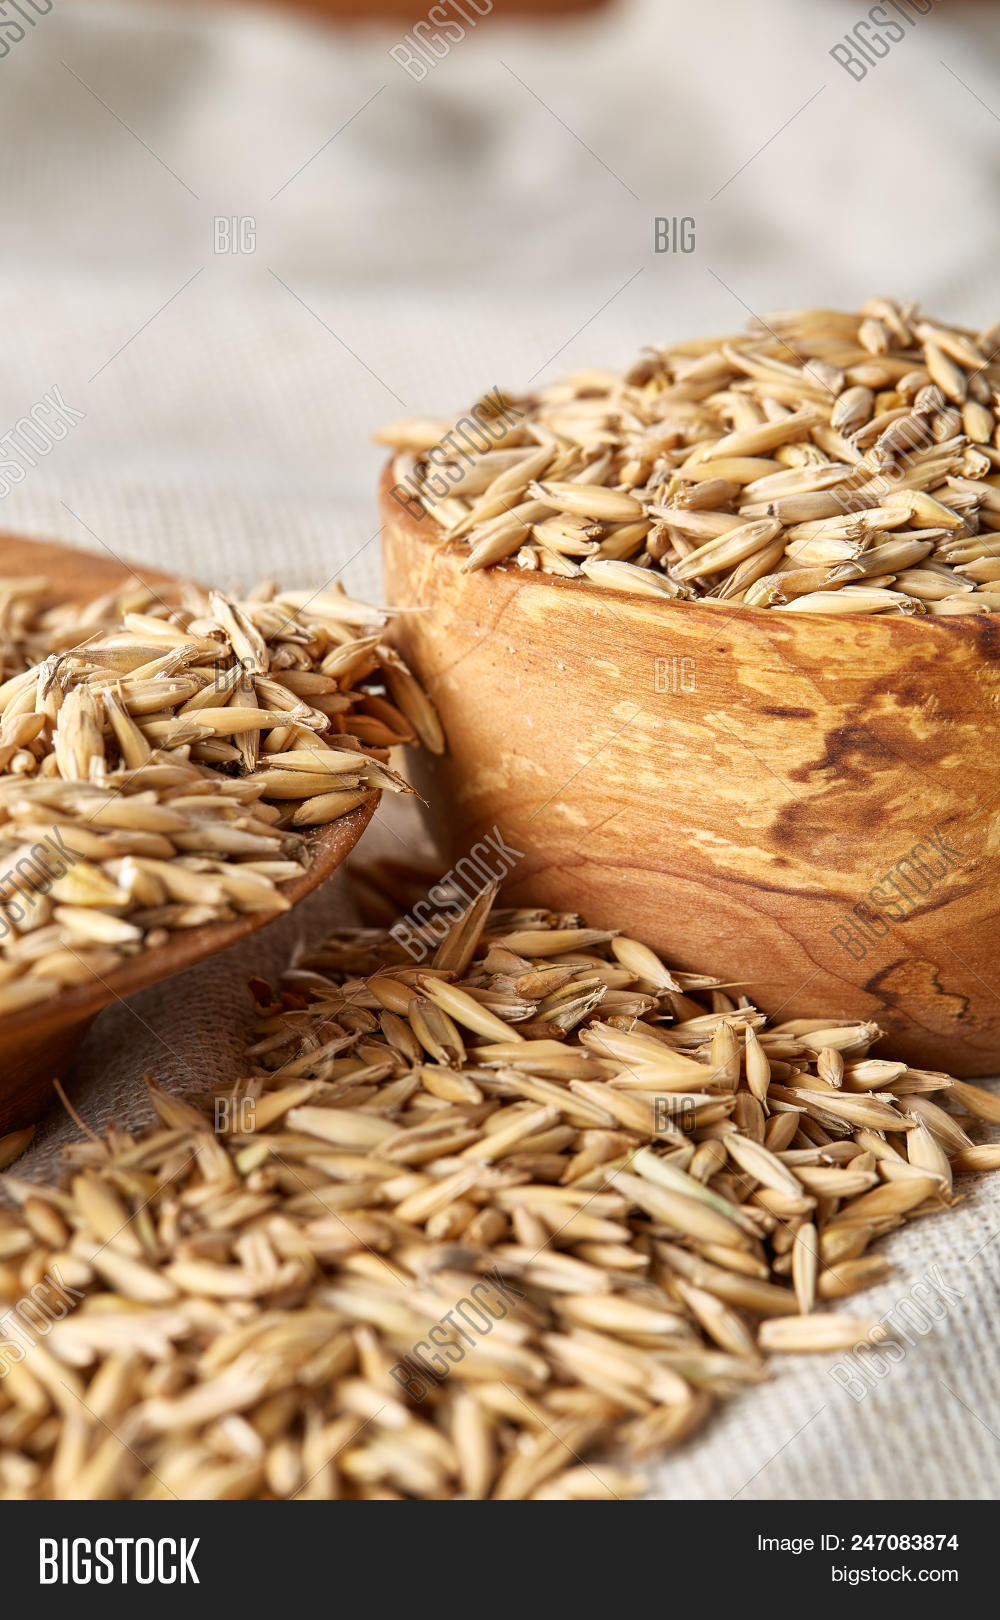 Oat Groats Oat Spike Image & Photo (Free Trial) | Bigstock